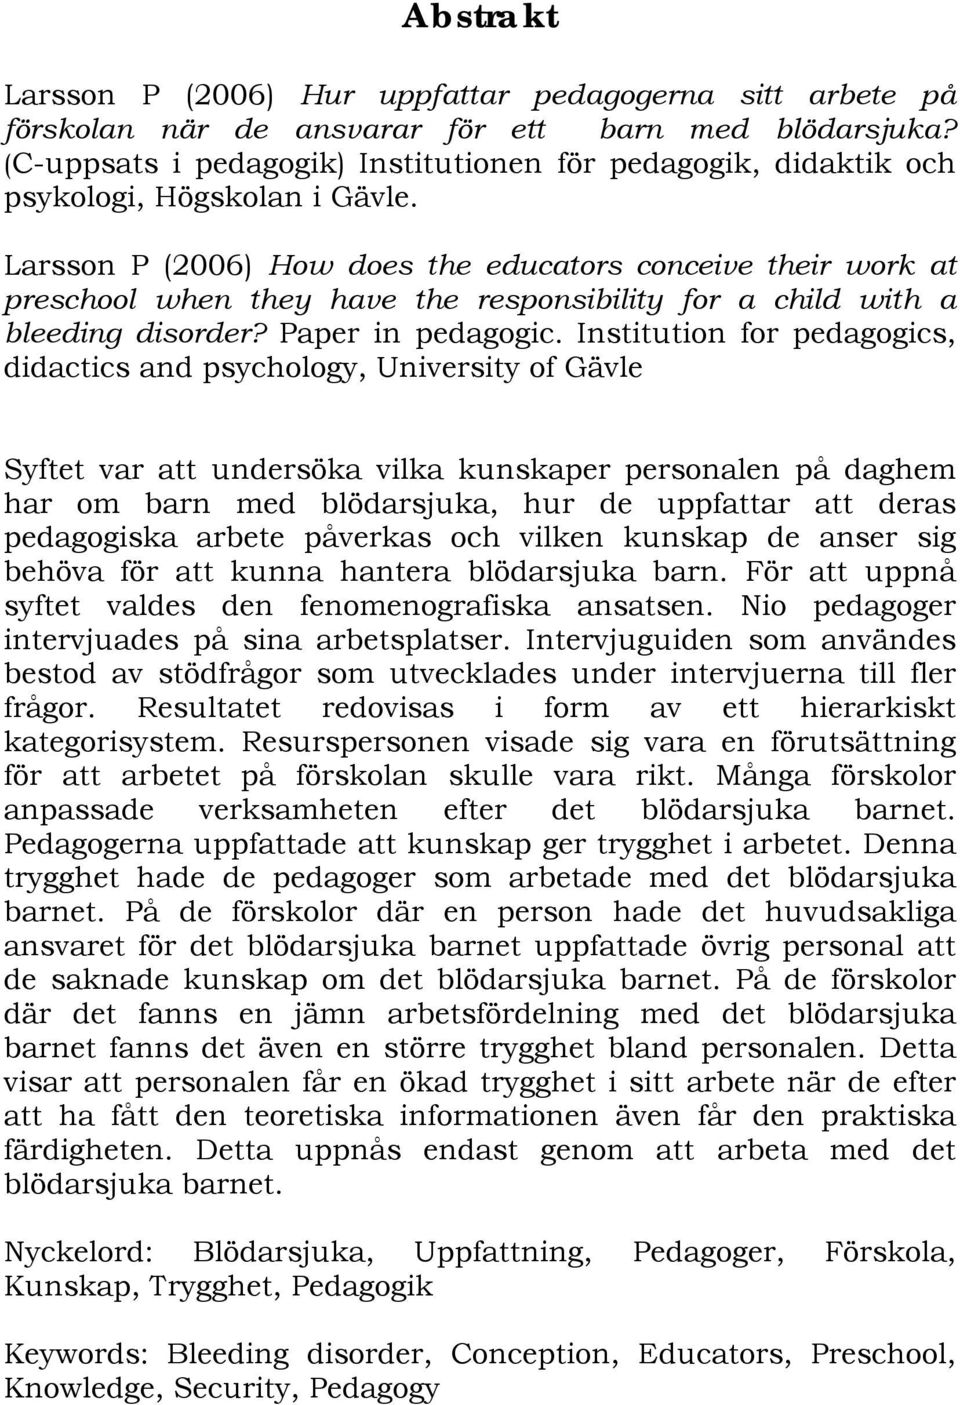 Larsson P (2006) How does the educators conceive their work at preschool when they have the responsibility for a child with a bleeding disorder? Paper in pedagogic.